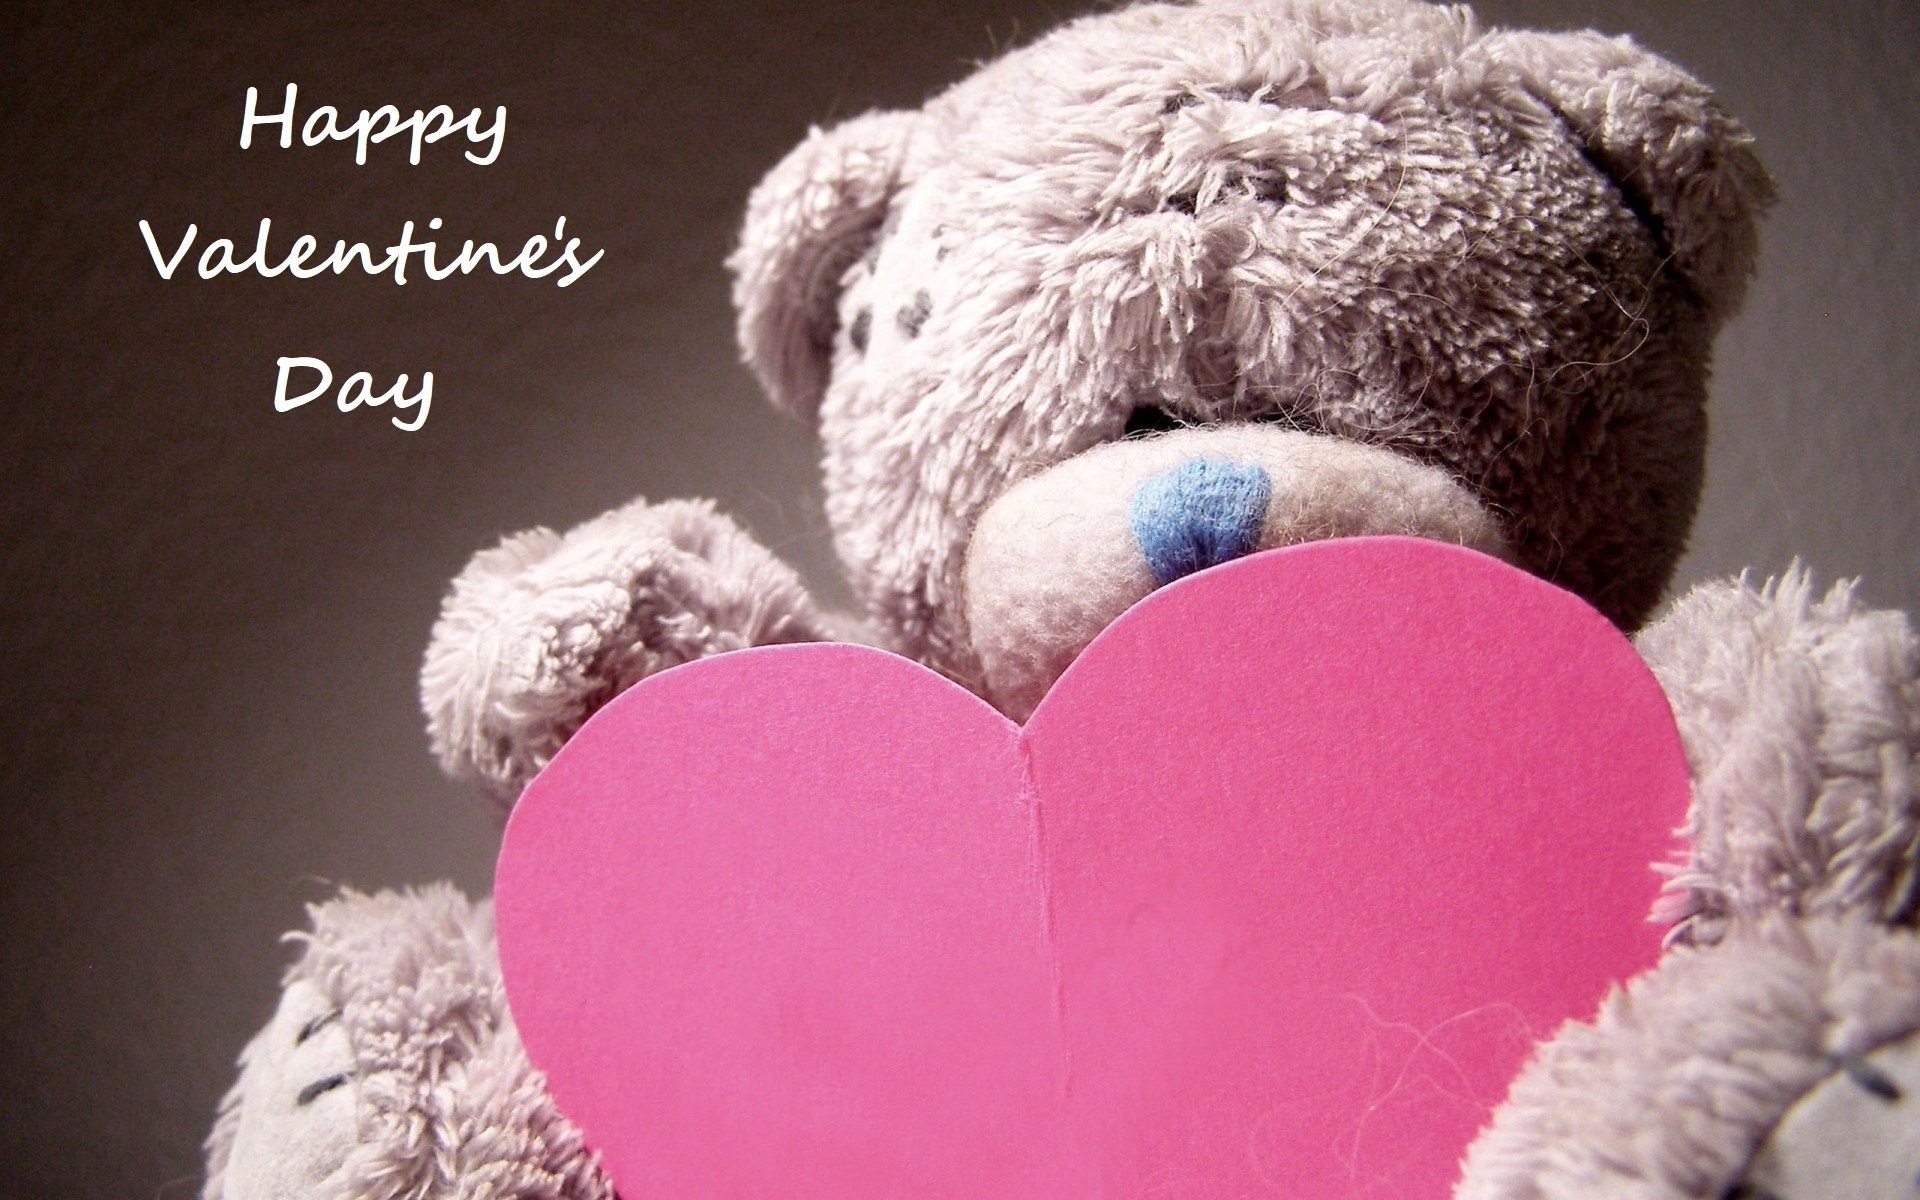 Holiday - Valentine's Day  Love Heart Teddy Bear Stuffed Animal Wallpaper